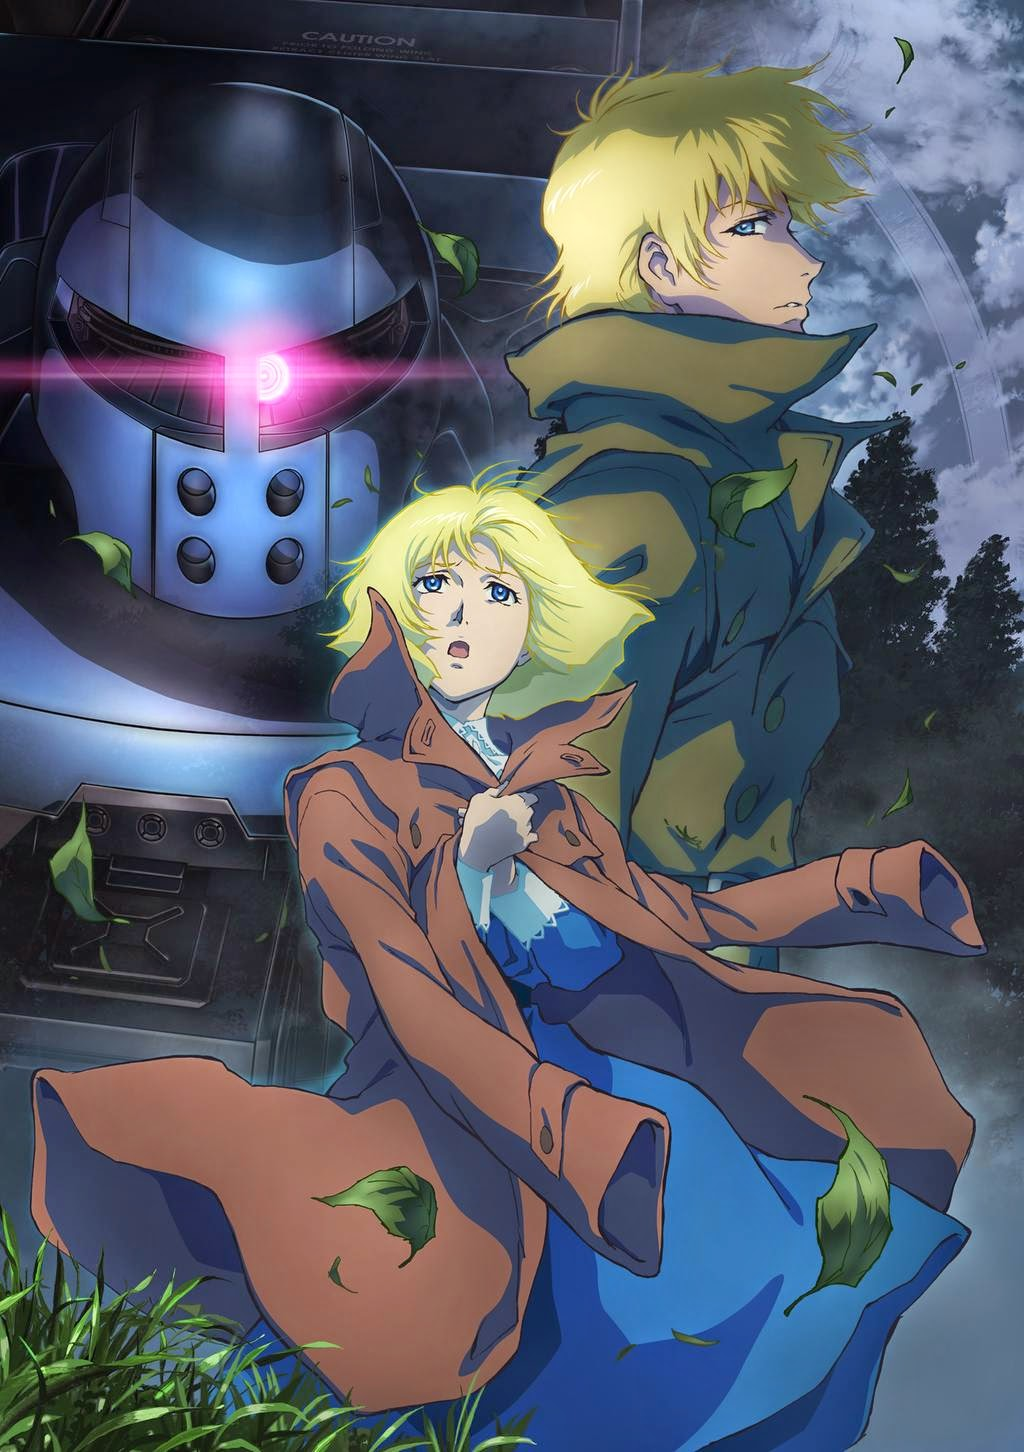 GUNDAM THE ORIGIN: DISPONIBILE IL TRAILER DEL SECONDO CAPITOLO DELL'ANIME, KANASHIMI NO ARTESIA